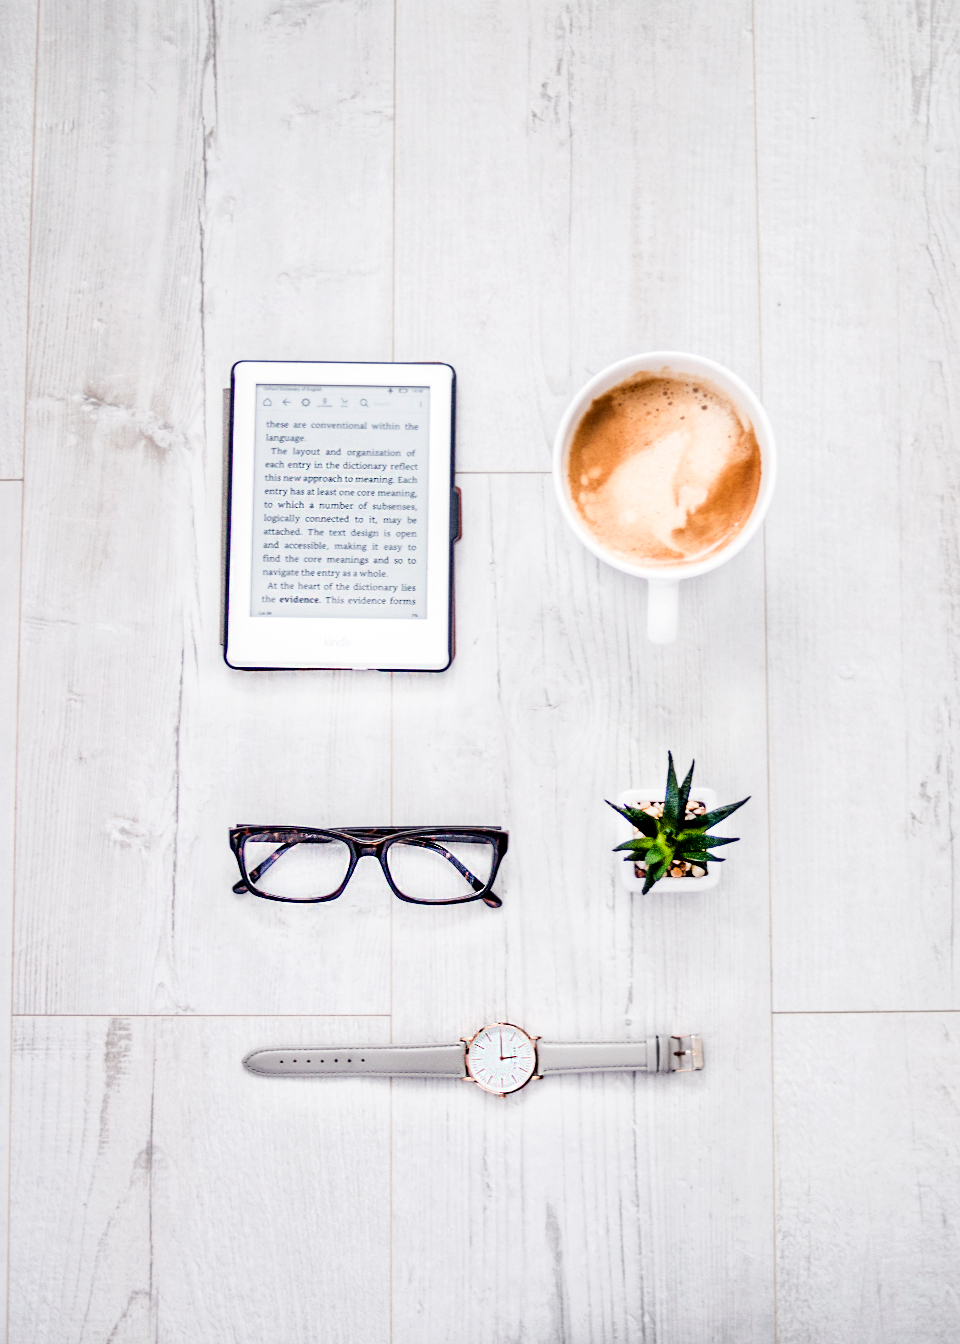 reader coffee glasses plant watch technology ebook kindle cappuccino espresso wood background house plant green nature time